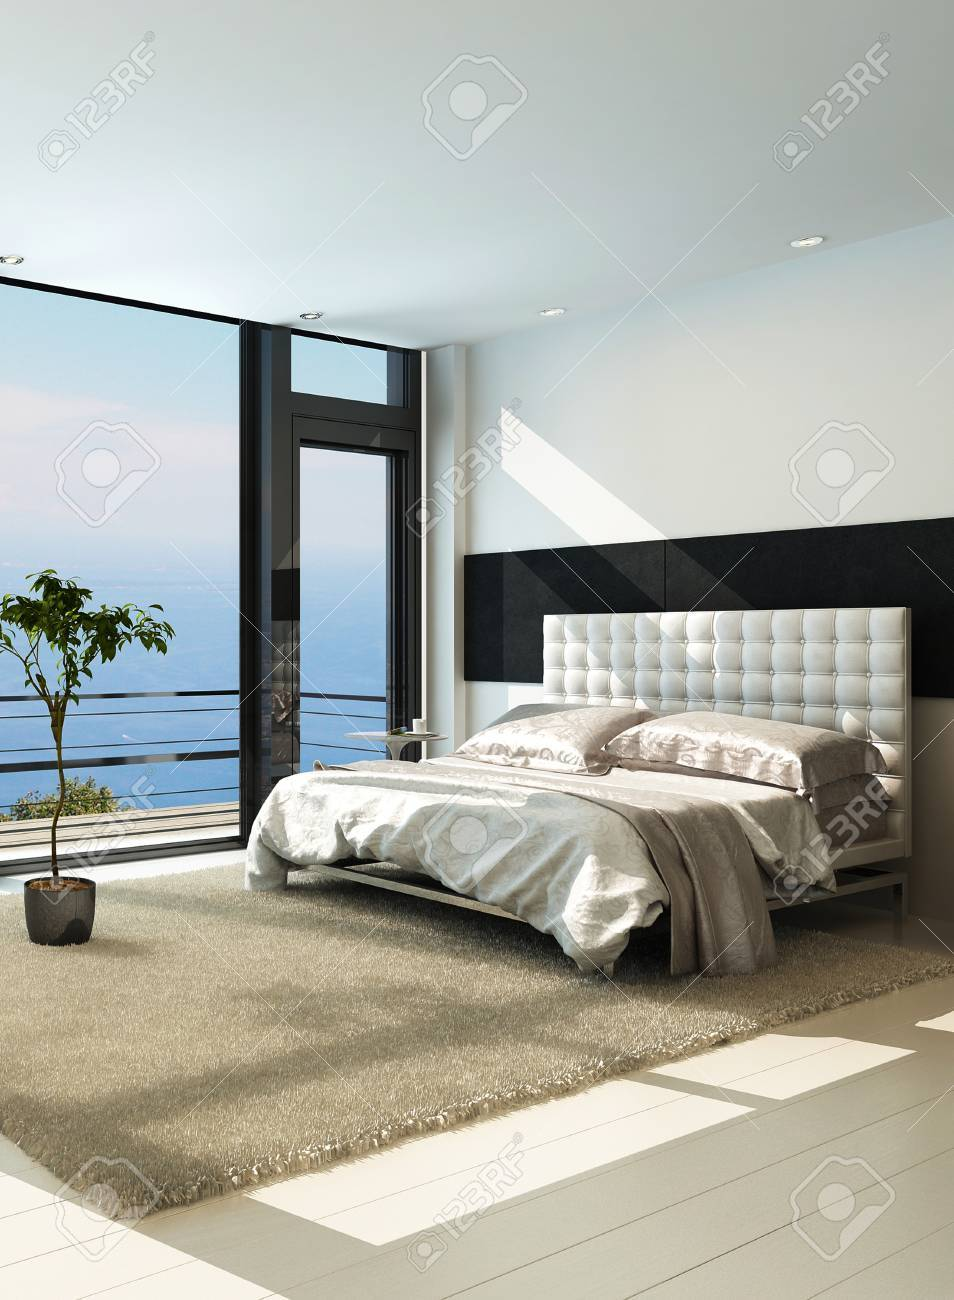 Contemporary modern sunny bedroom interior with huge windows Stock Photo - 23064260